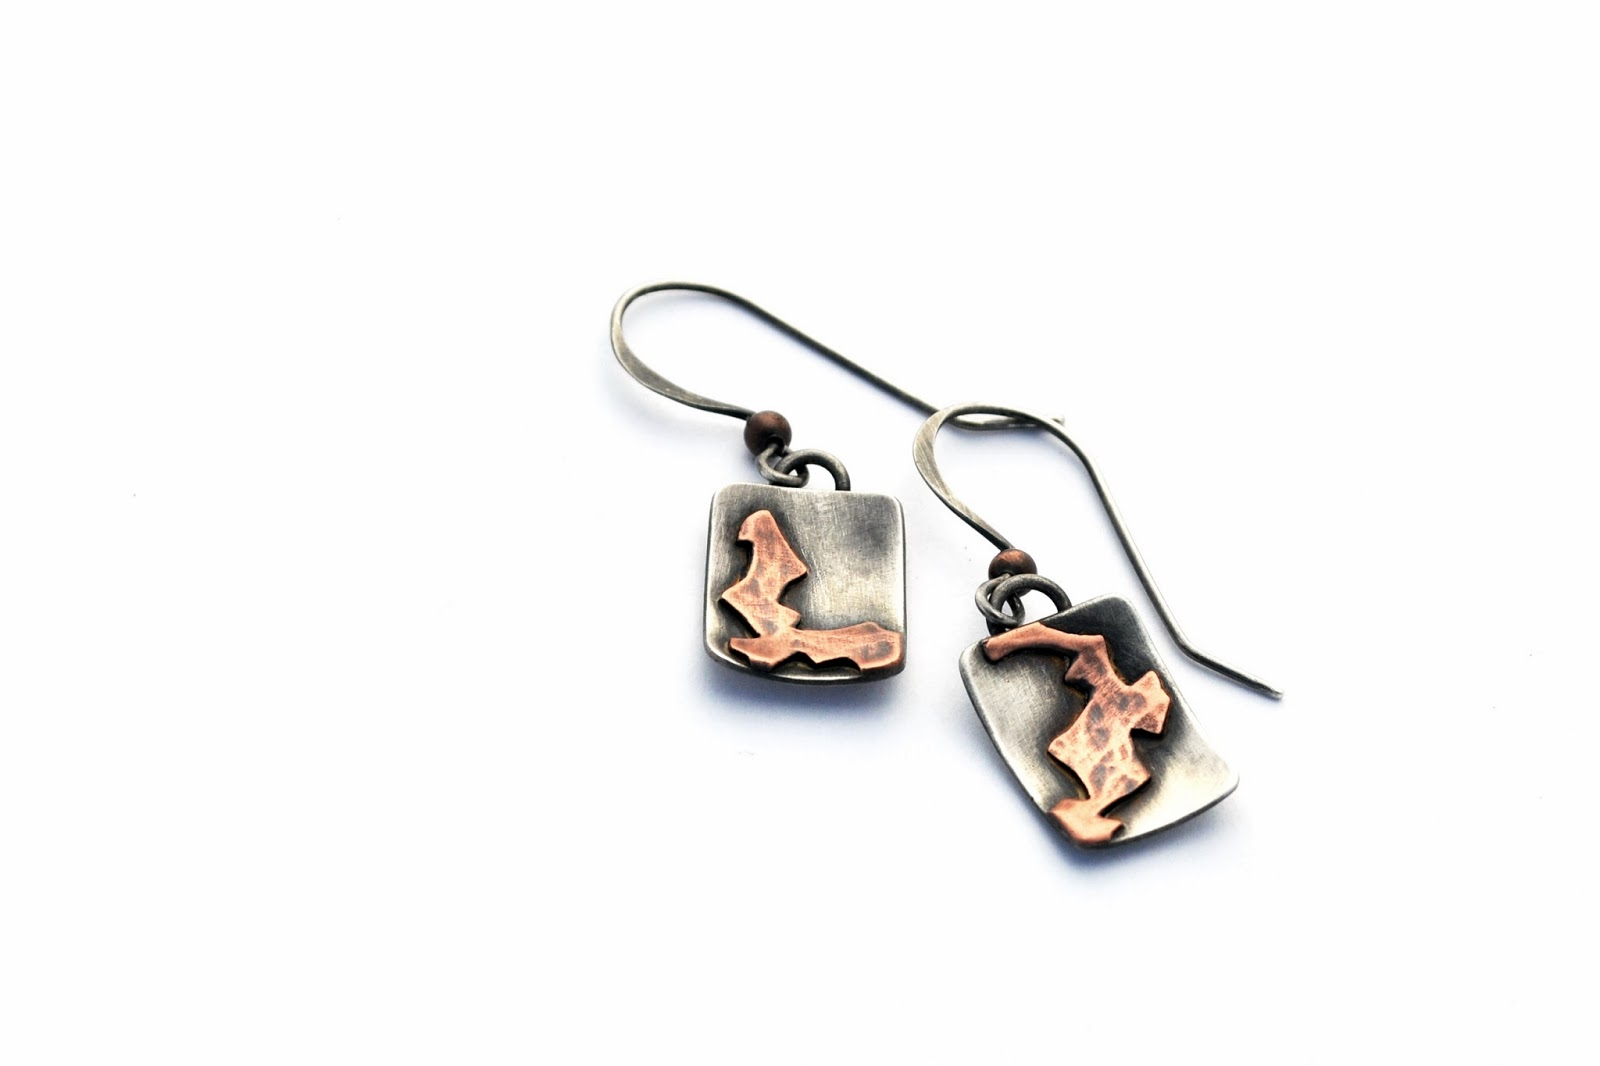 https://www.etsy.com/listing/174736692/mismatched-sterling-silver-and-copper?ref=listing-shop-header-1